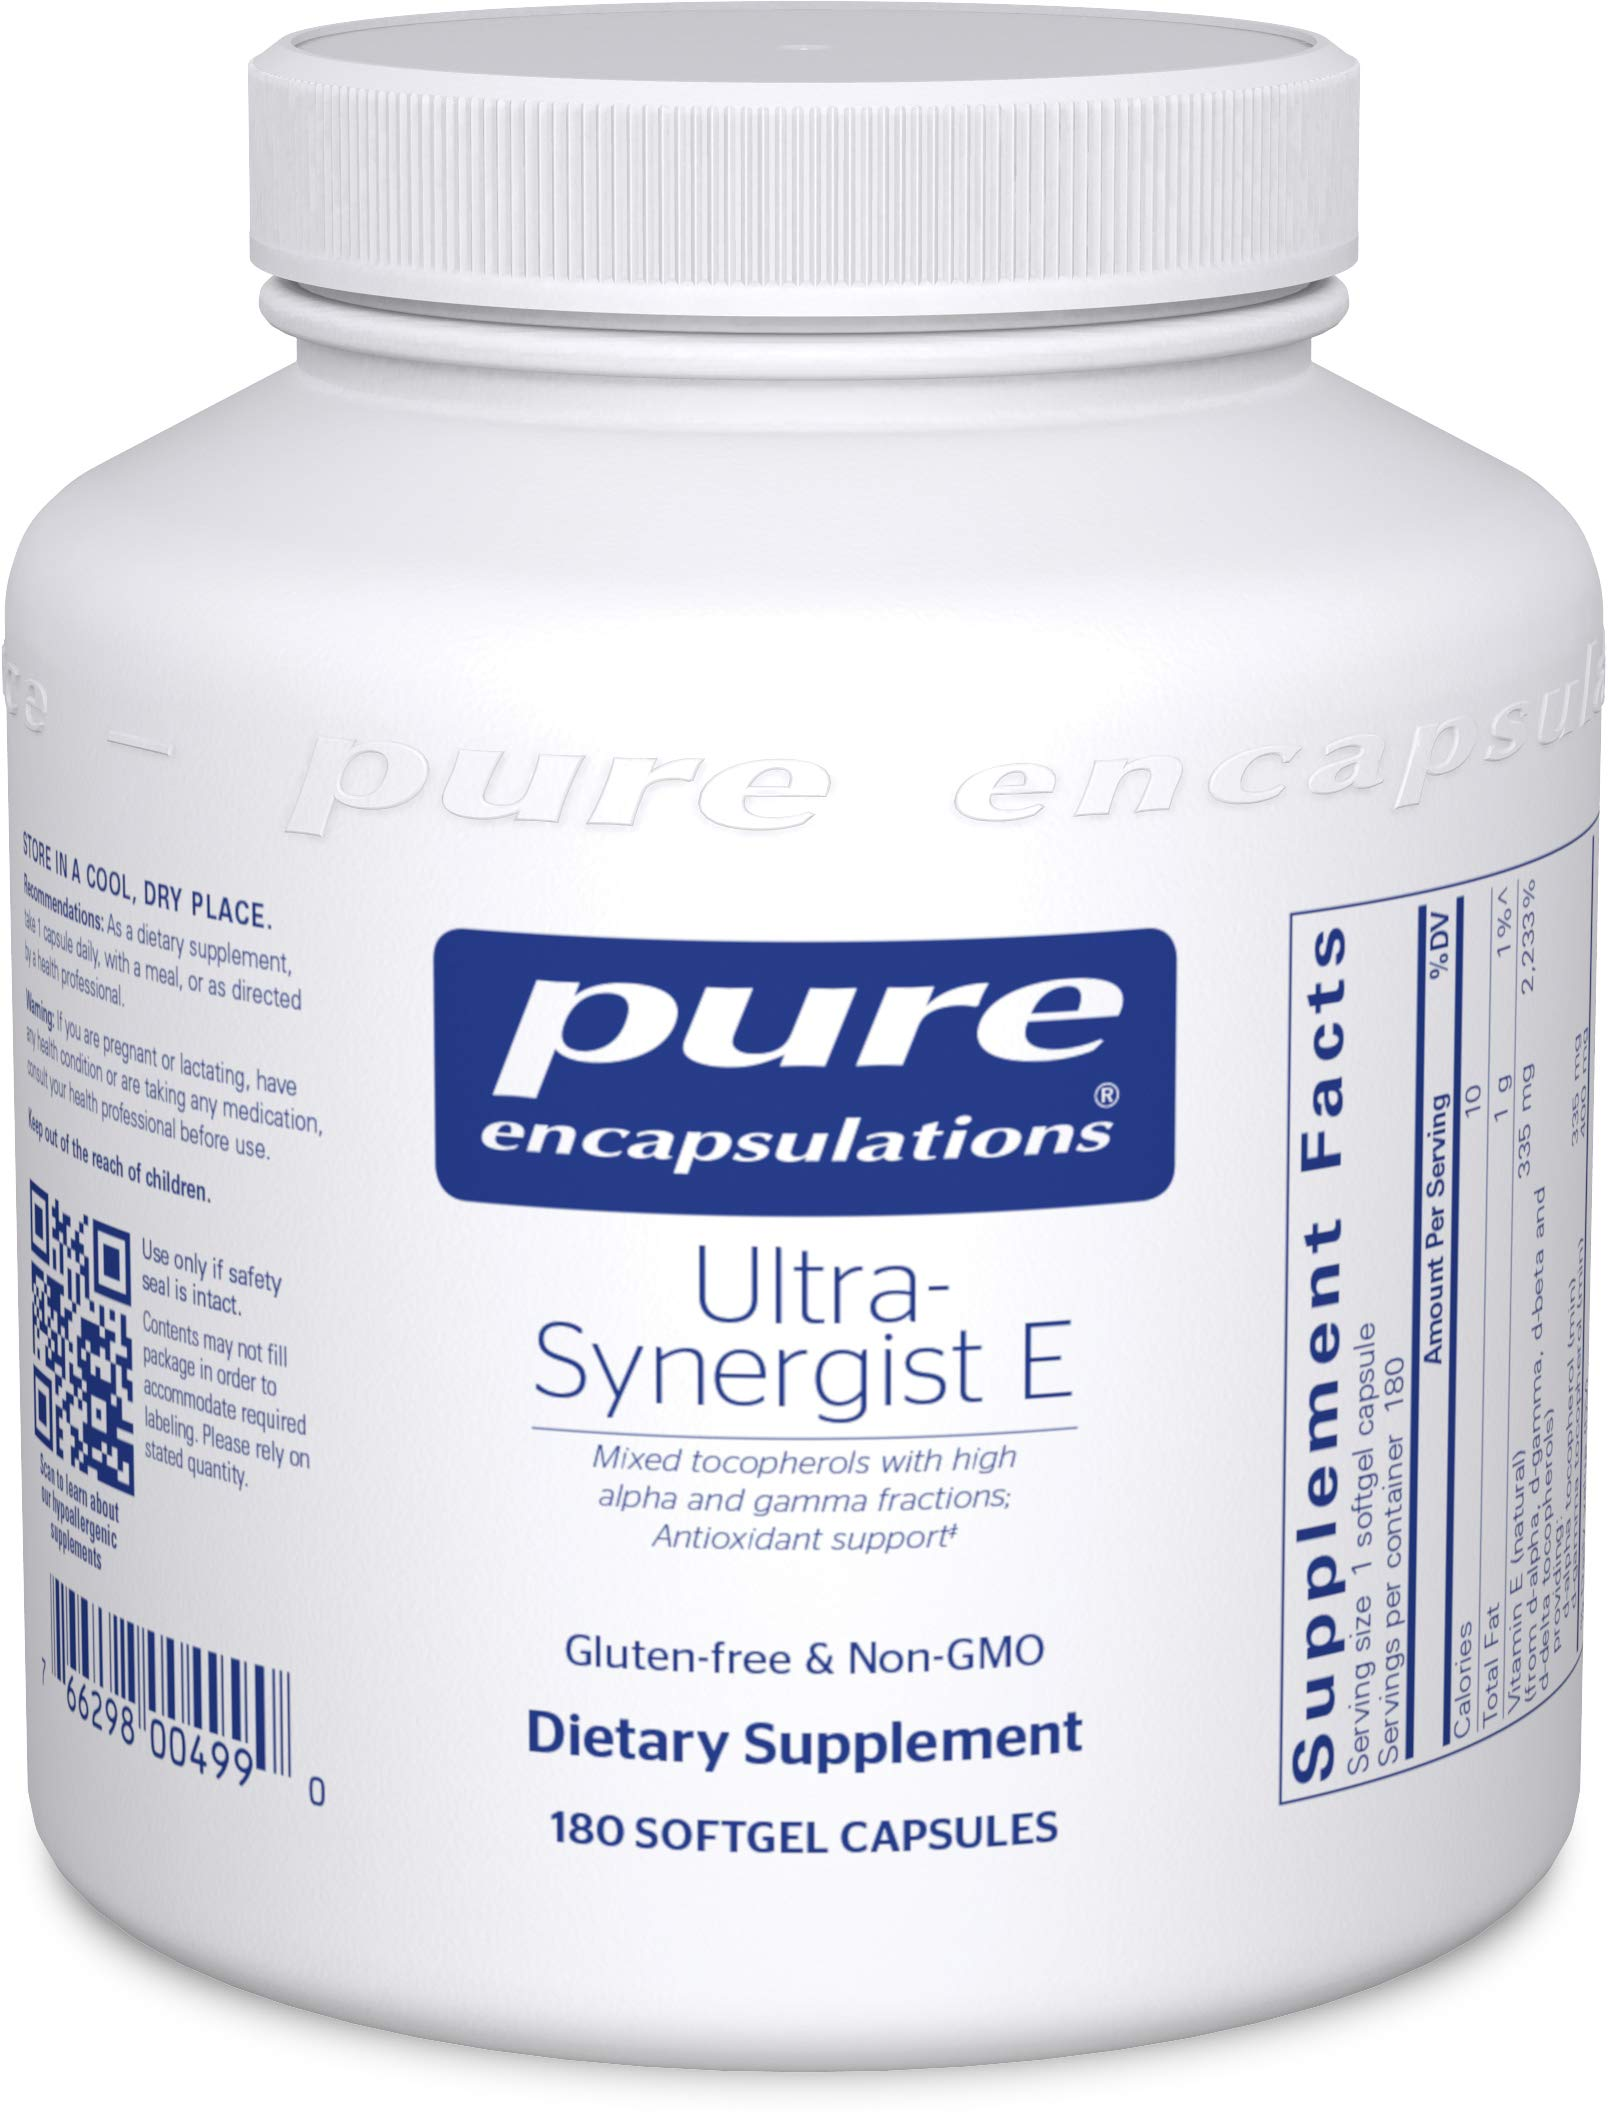 Pure Encapsulations - Ultra-Synergist E - Vitamin E Mixture for Antioxidant Support, Prostate Health, and Cardiovascular Function - 180 Softgel Capsules